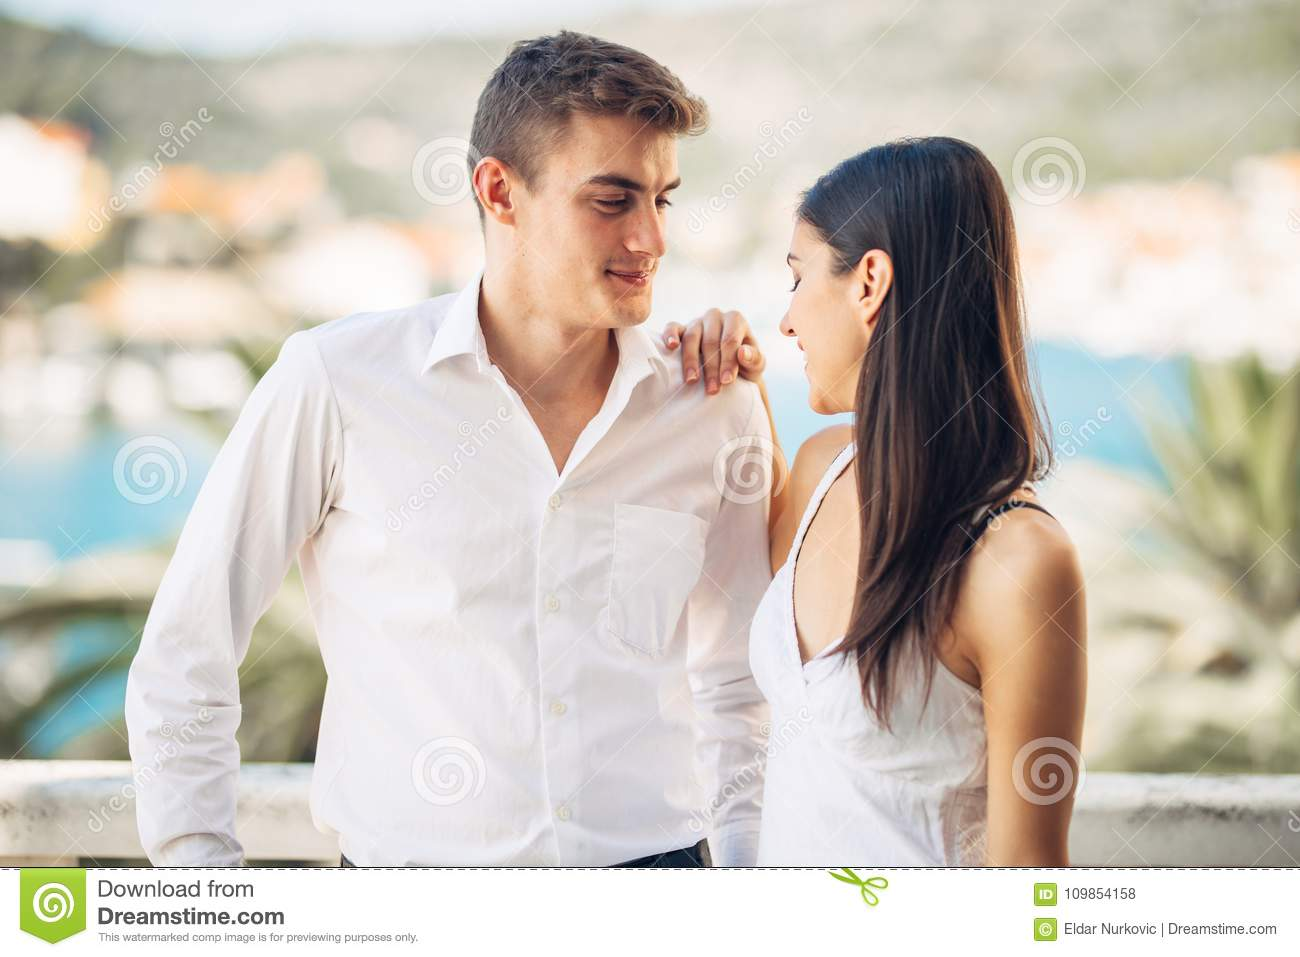 Happy couple in love on a summer holiday vacation.Celebrating holiday,anniversary,engagement. Woman laughing at a joke